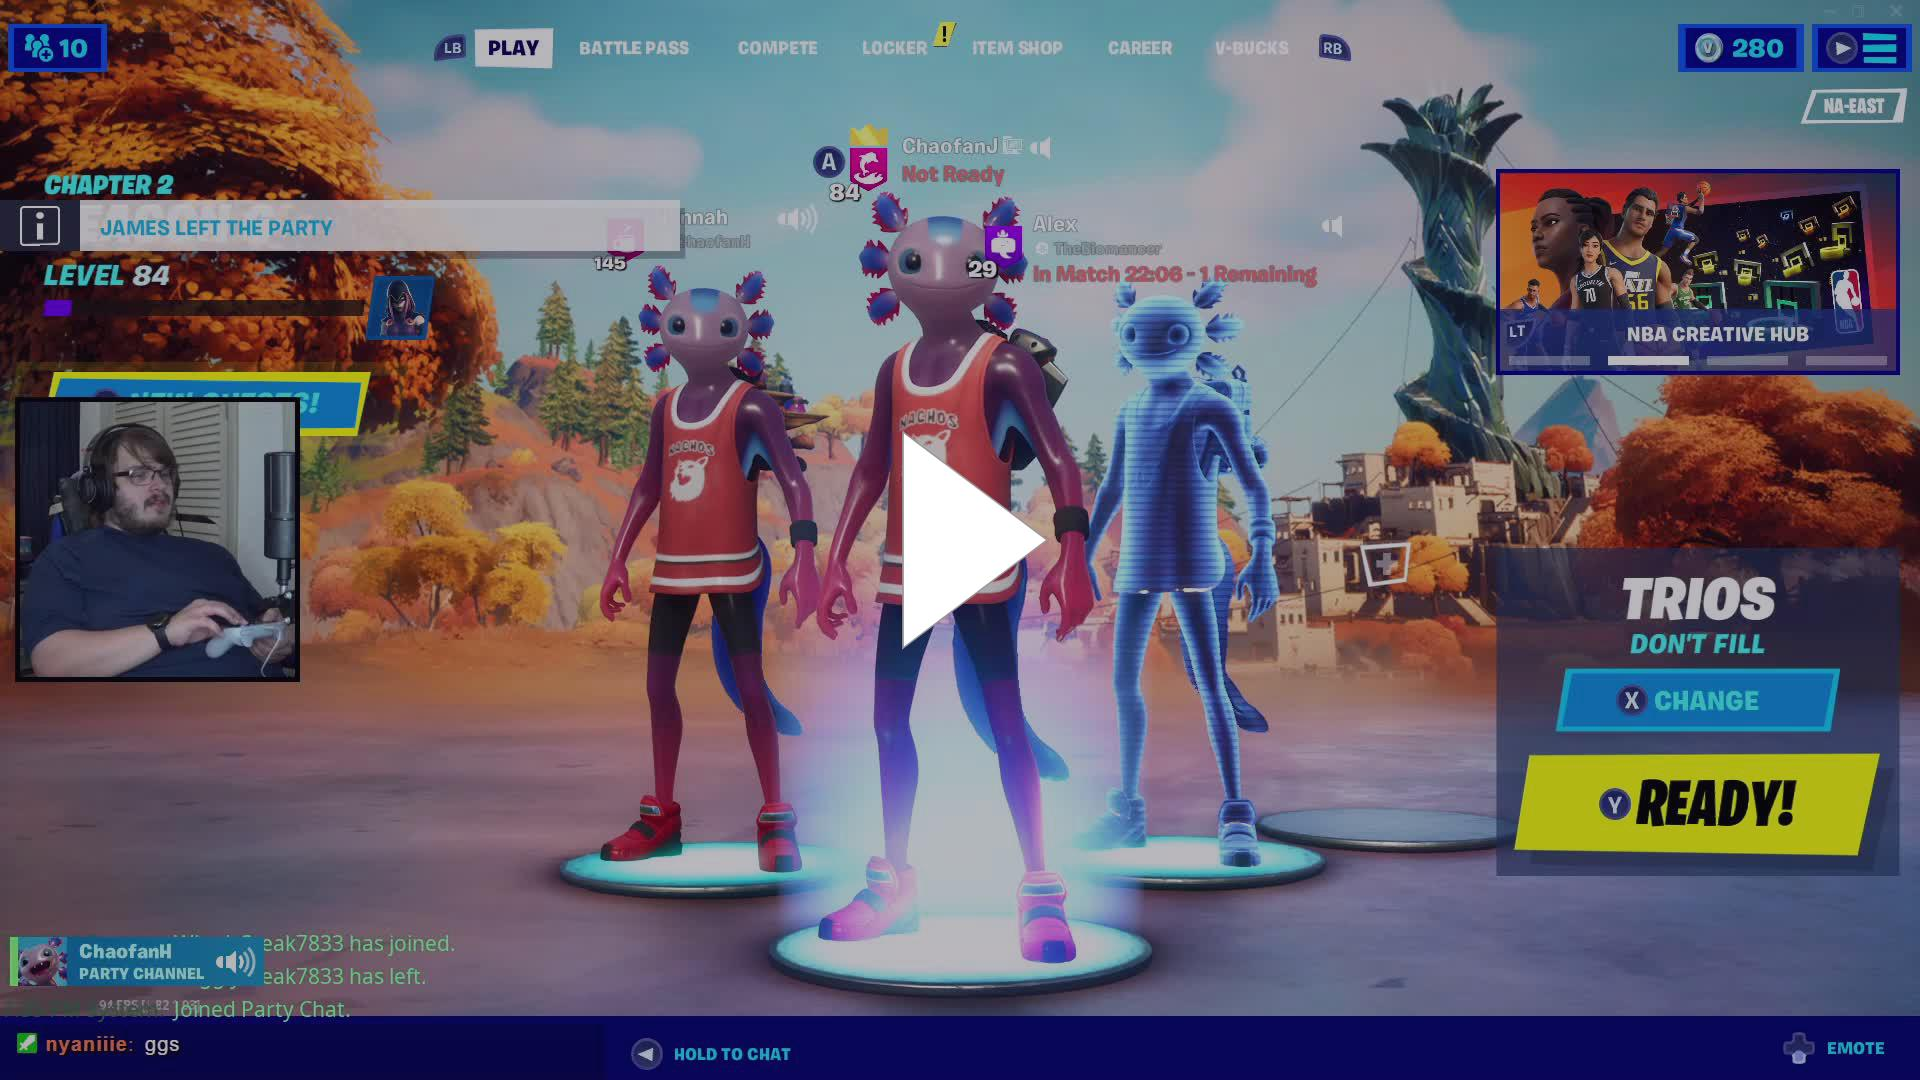 Summit1g Fortnite Battle Royale Twitch Clips Playing With Friends Fortnite Battle Royale Twitch